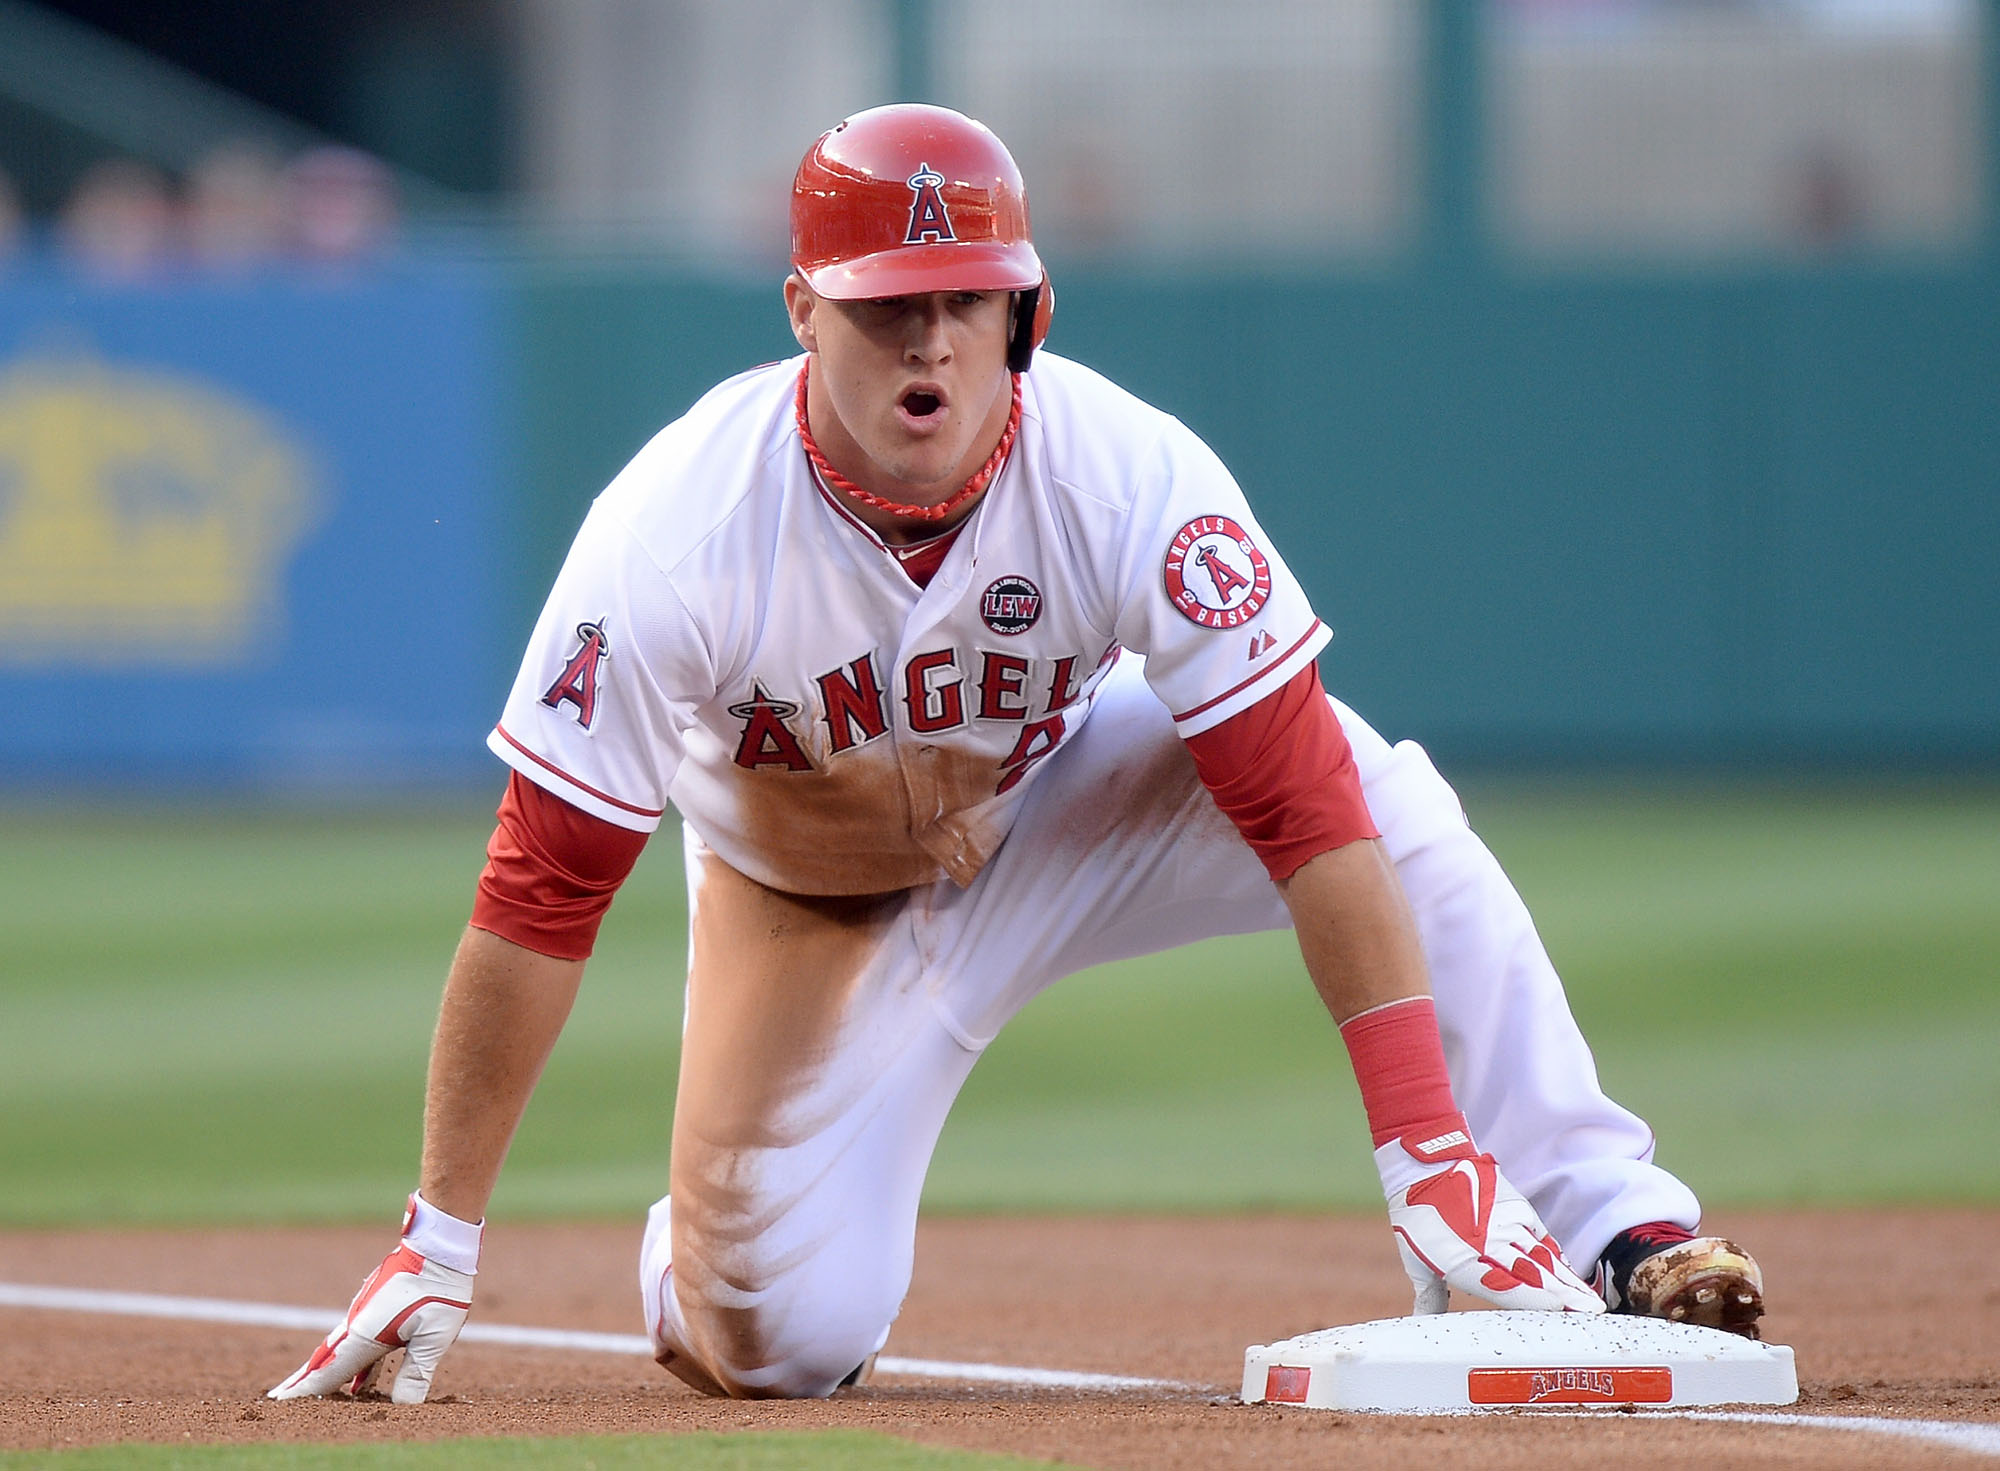 Mike Trout Position Centerfielder Bats Right Throws Right 62 235lb 188cm 106kg Team Los Angeles Angels majors Born August 7 1991 in